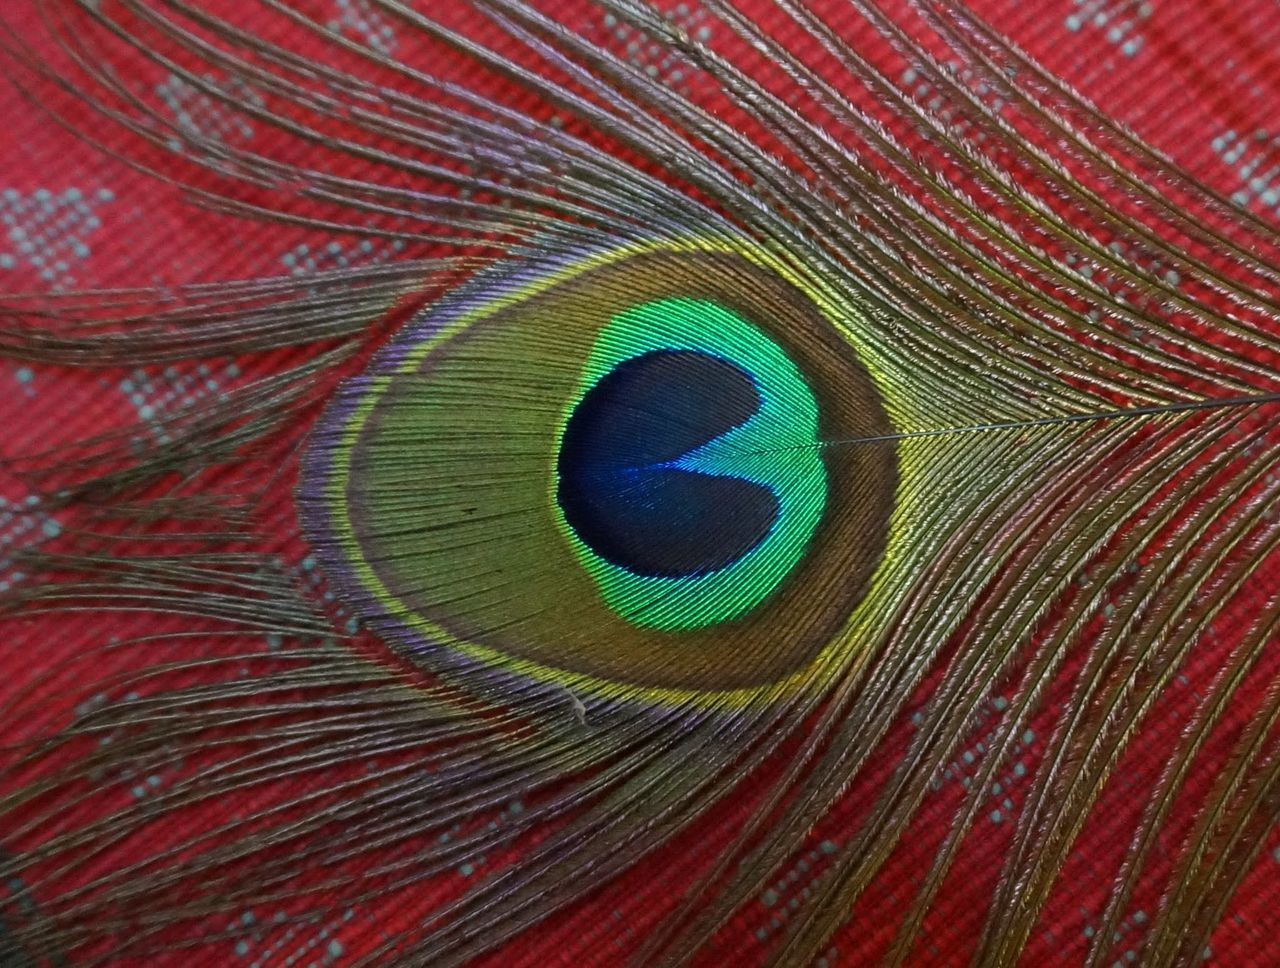 peacock, peacock feather, feather, close-up, full frame, backgrounds, no people, multi colored, one animal, fragility, animal themes, bird, red, beauty in nature, nature, fanned out, day, outdoors